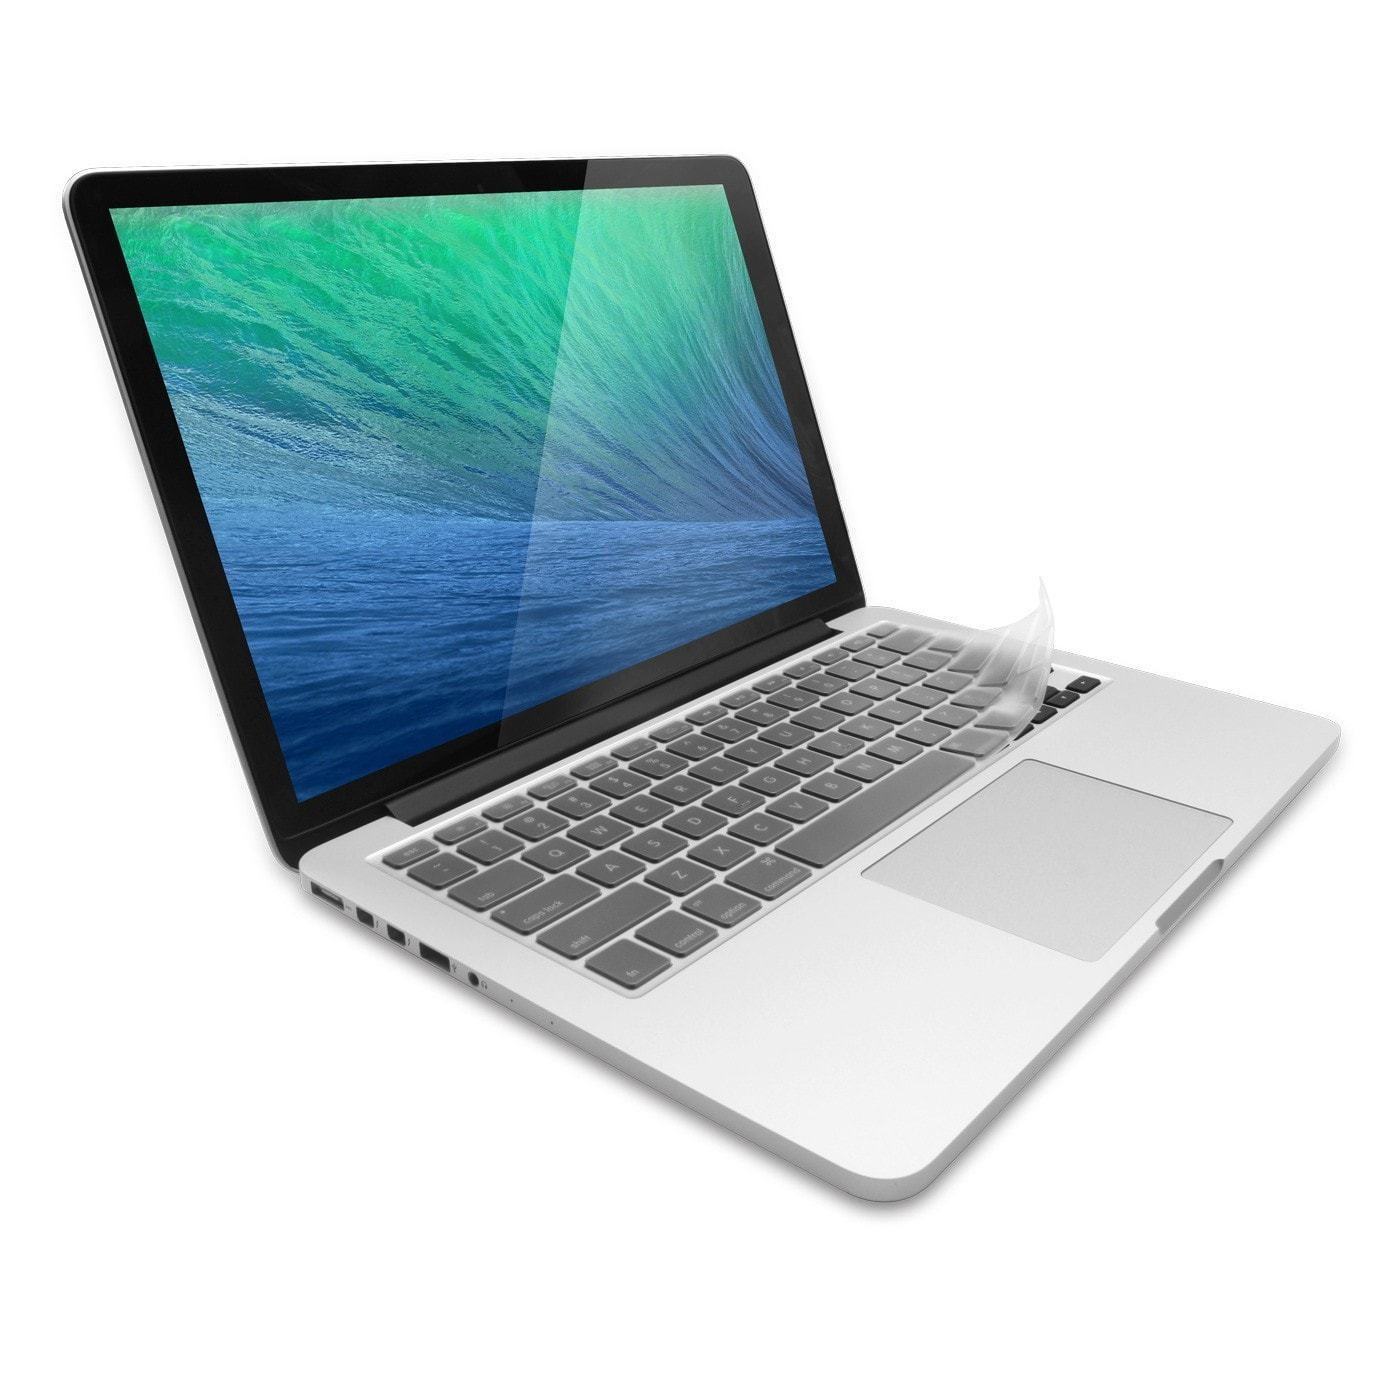 reputable site 80a57 cdffc FitSkin Ultra Clear Keyboard Protector for MacBook Pro (US Layout)